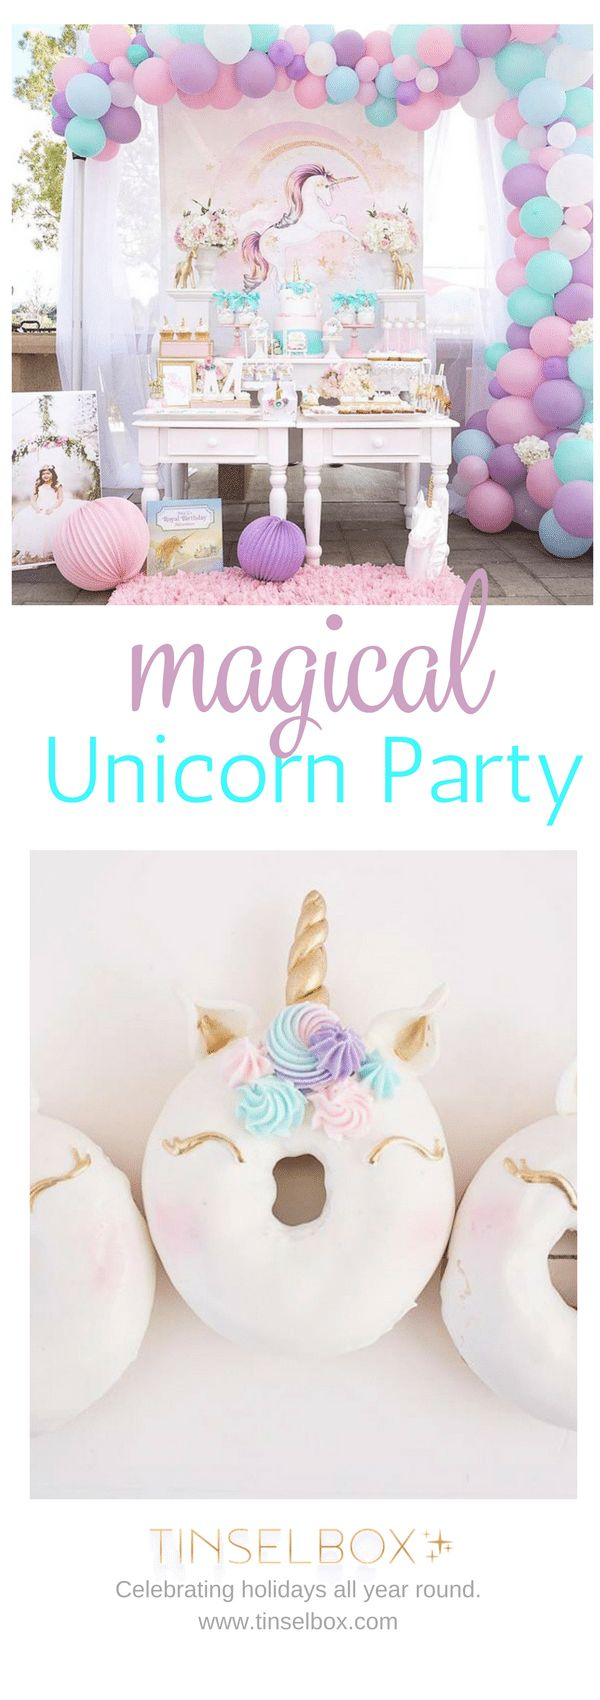 Magical unicorn party in purple, blue and gold. Amazing desserts and decorations